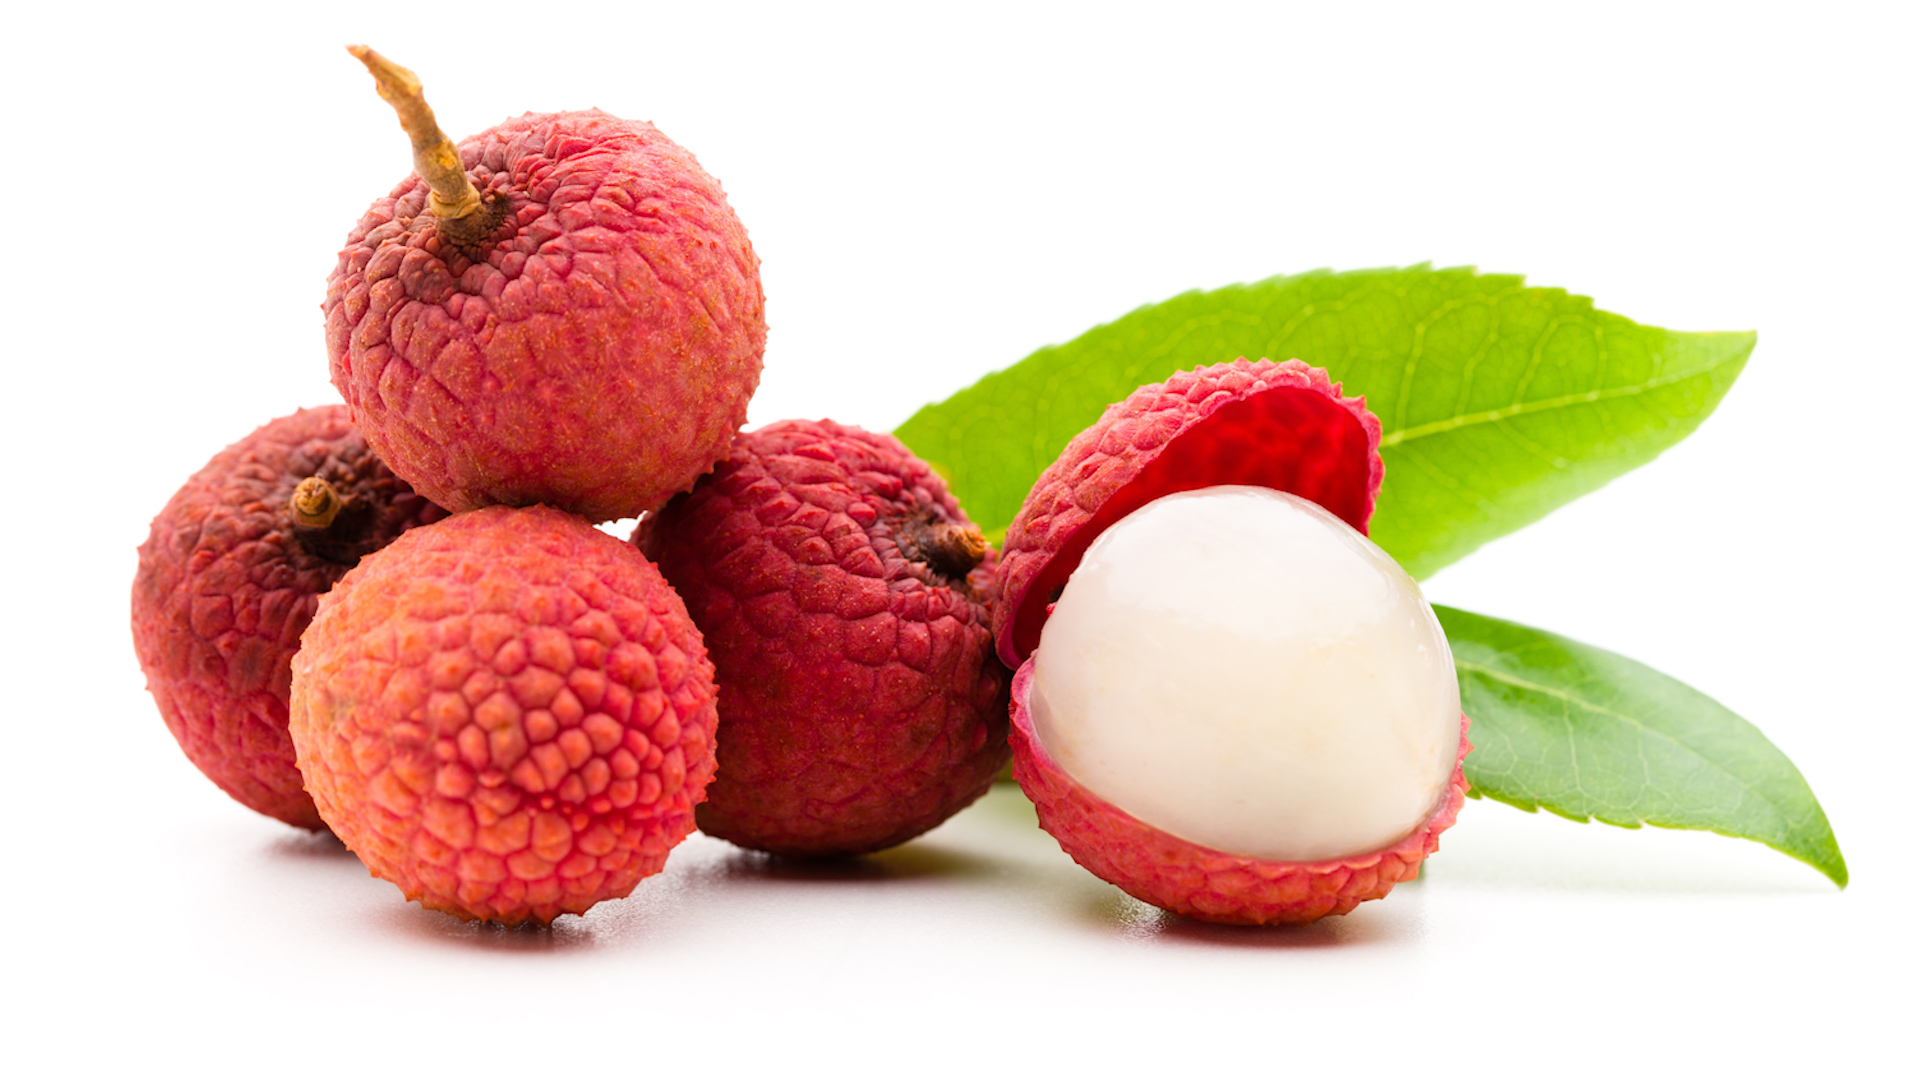 More than 100 Indian children died after 'eating lychees on empty stomach'